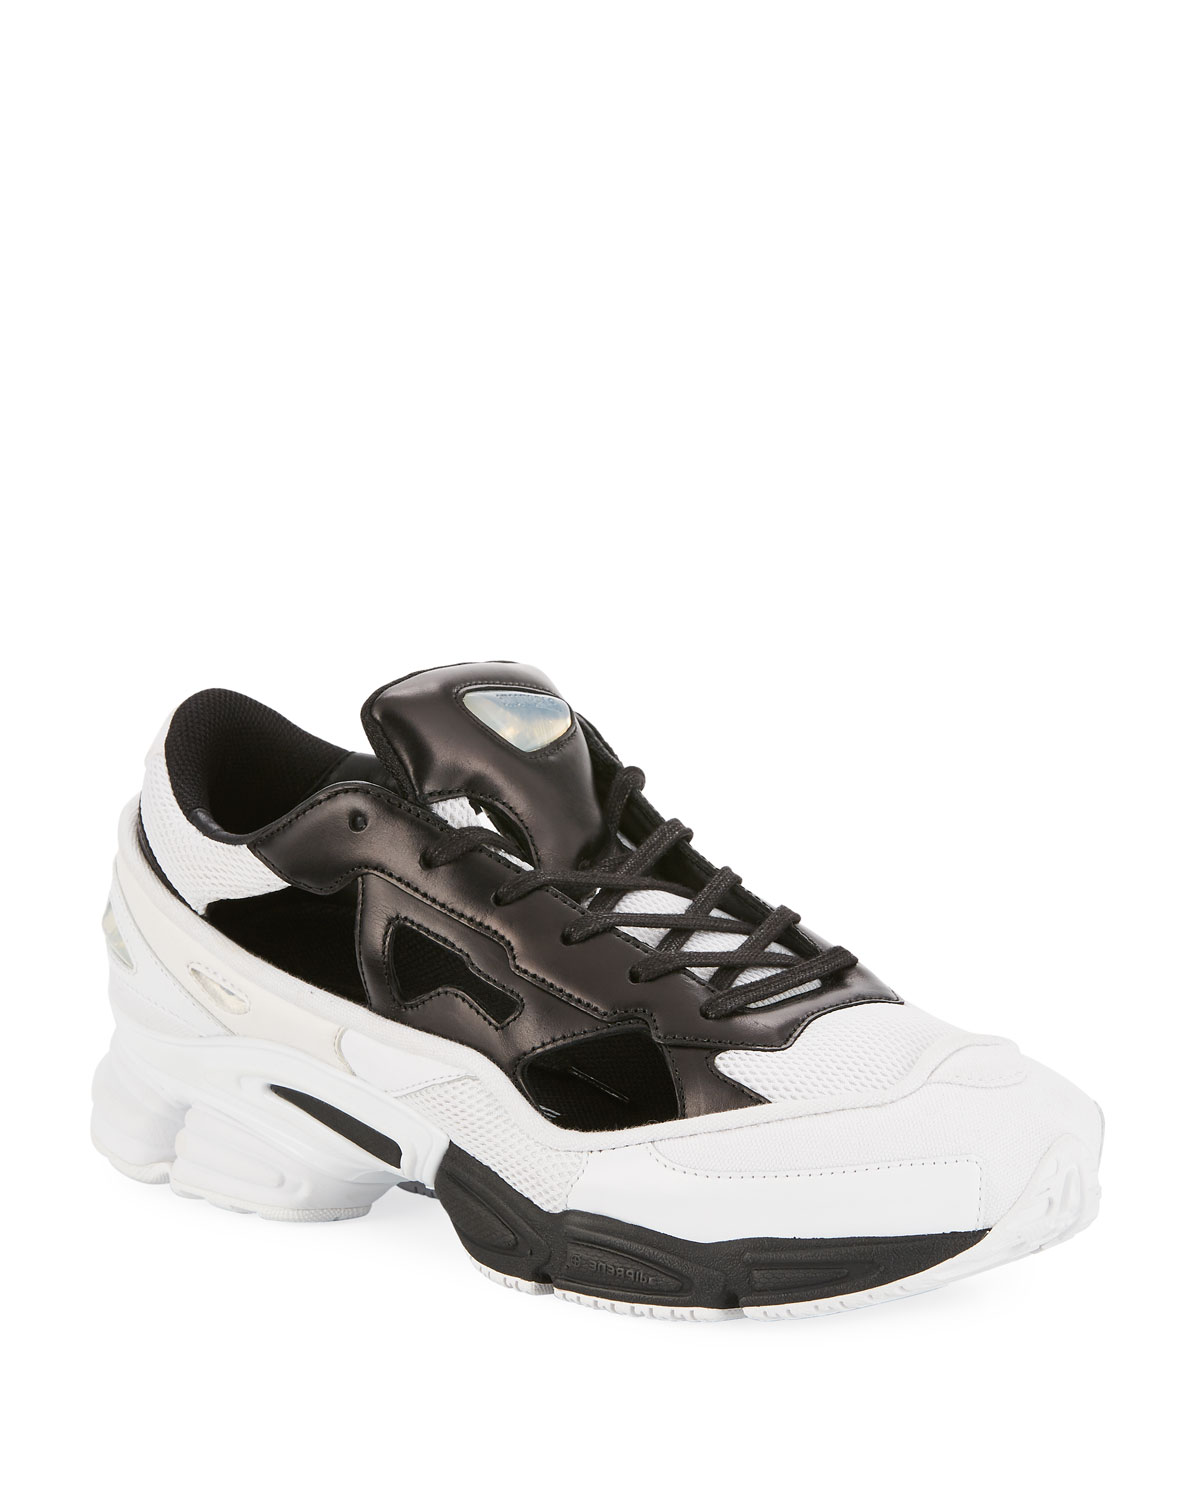 competitive price 7f947 ee04b Men's Replicant Ozweego Trainer Sneakers